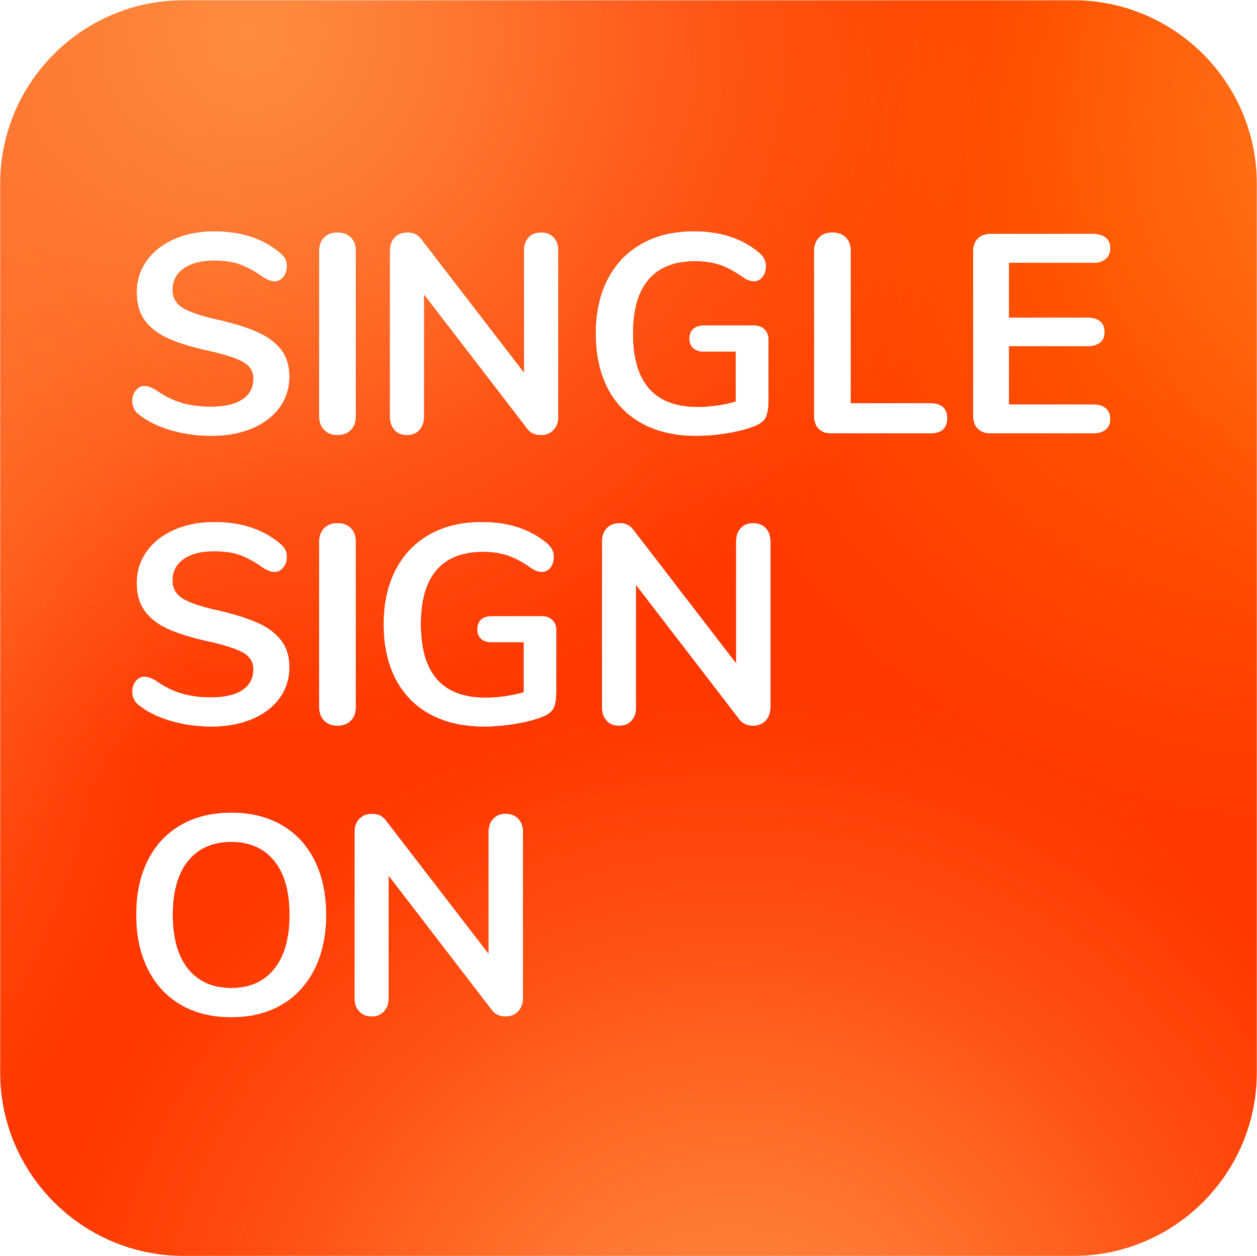 SAML Single Sign On